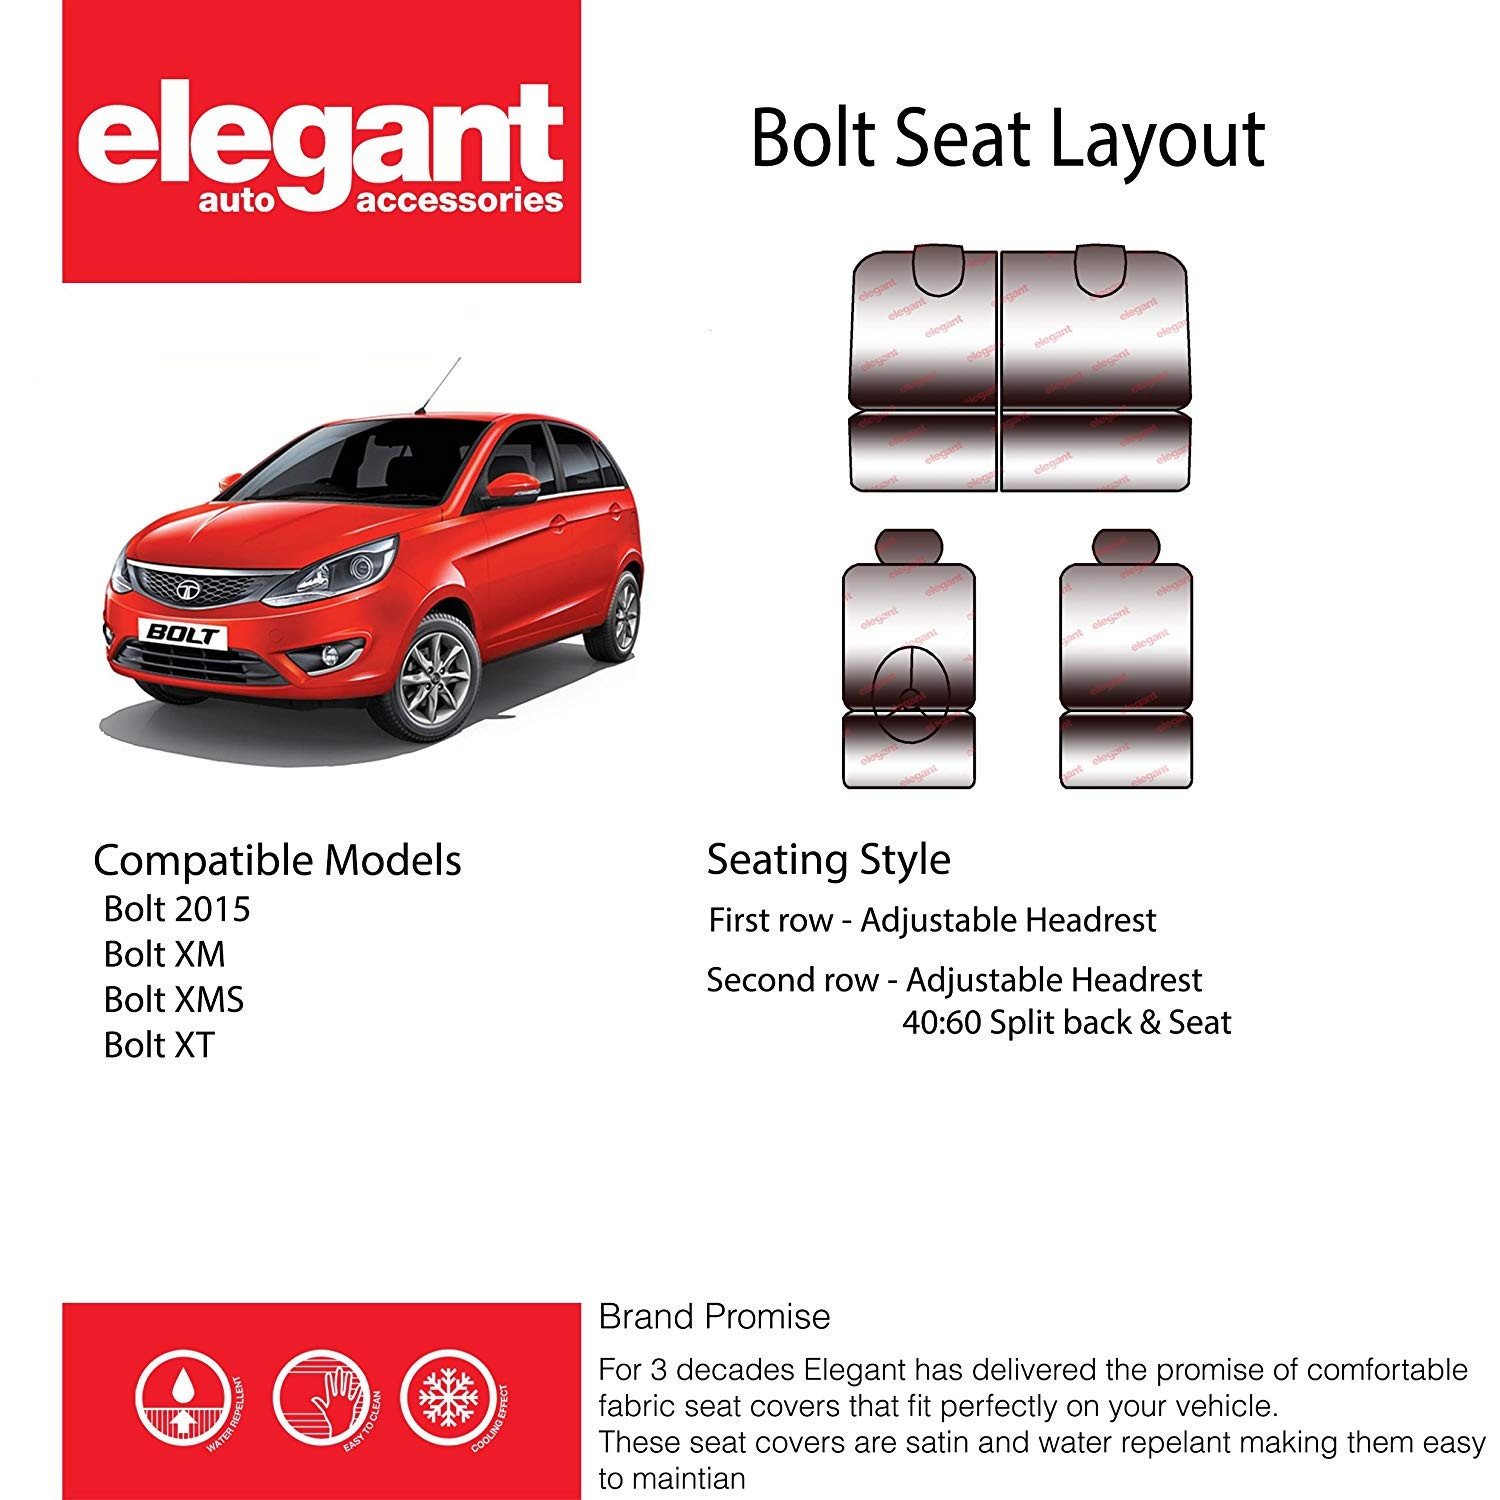 Tata Indica Engine Diagram Elegant Fabric Car Seat Cover Grey Europa Velocity for Tata Of Tata Indica Engine Diagram Tata Indica